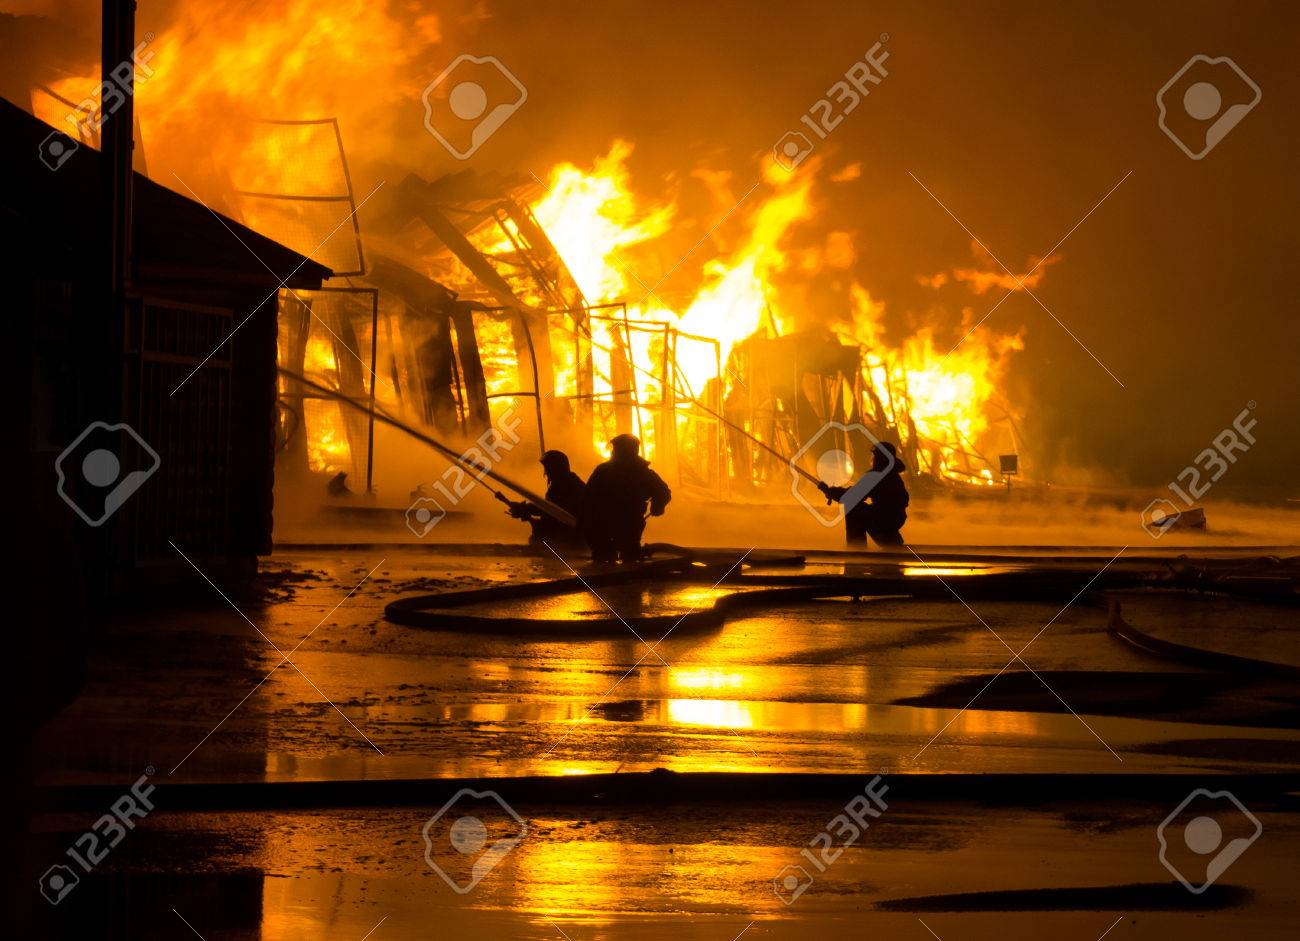 Firemen at work on fire - 28880297